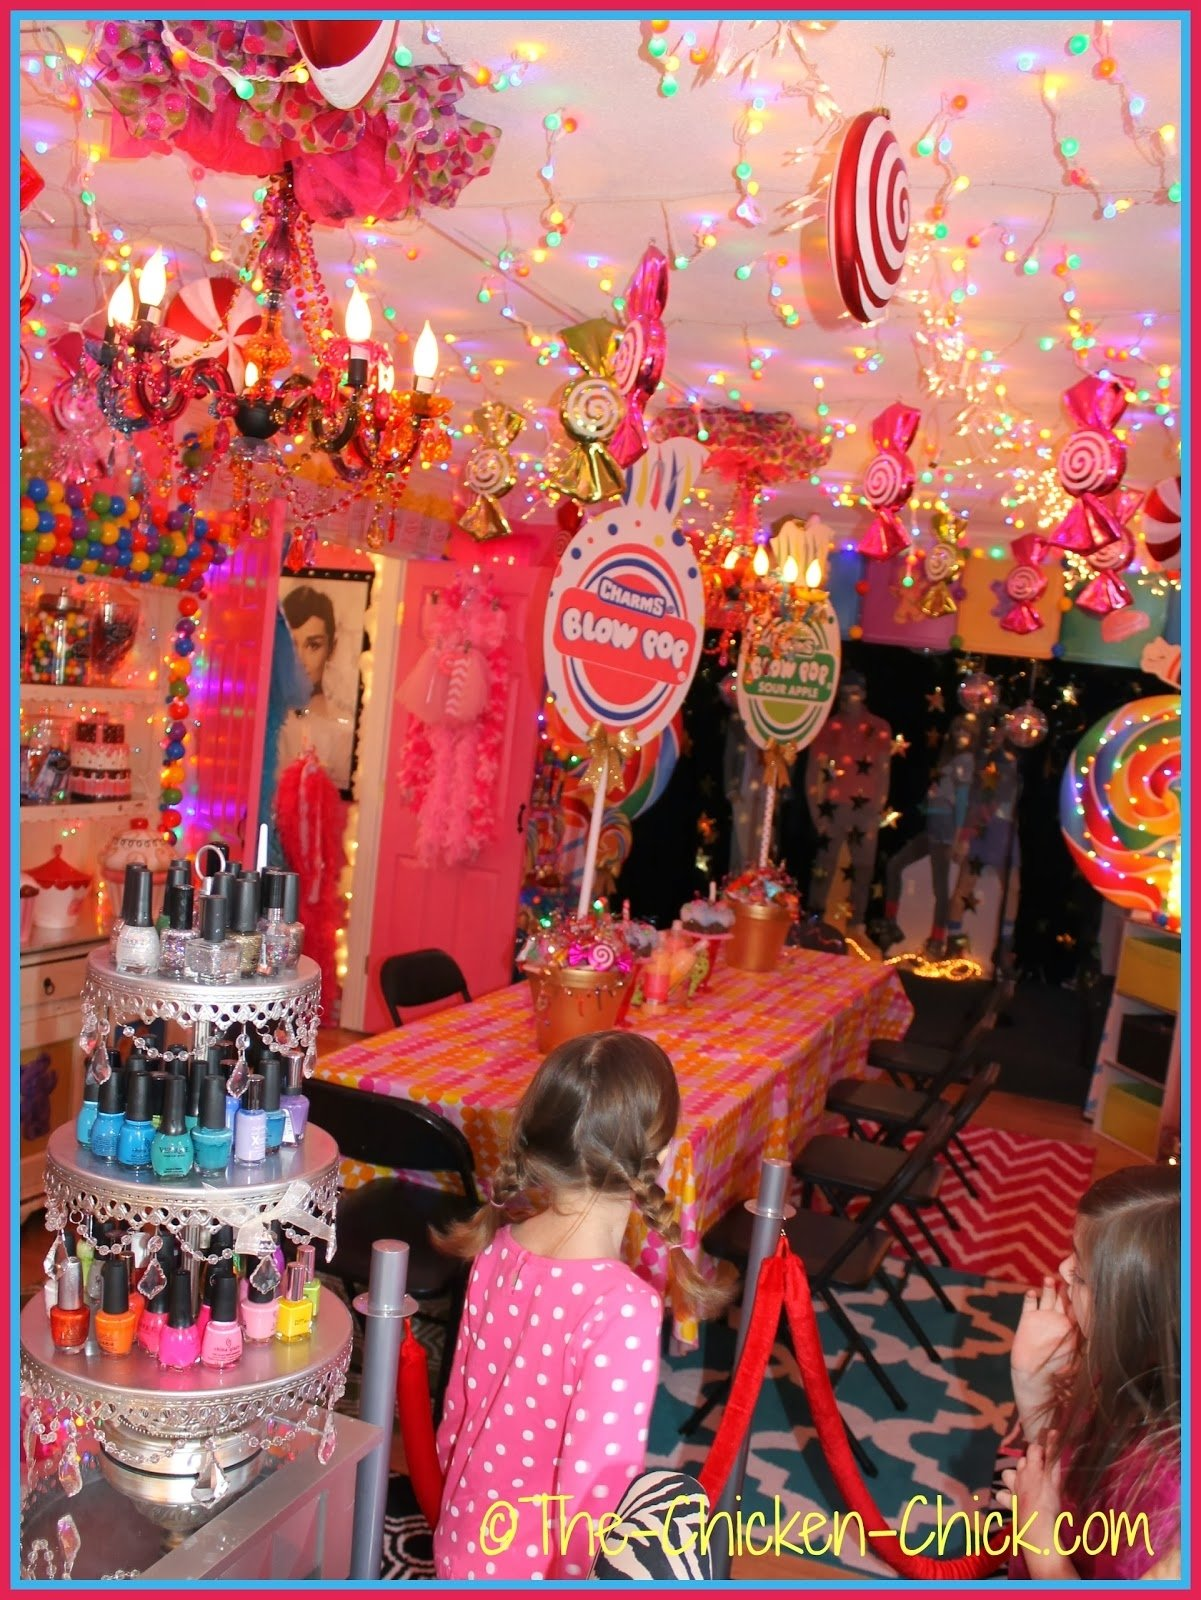 10 Lovely Ideas For 11 Year Old Birthday Party spa birthday party ideas for 7 year olds pool design ideas 29 2020